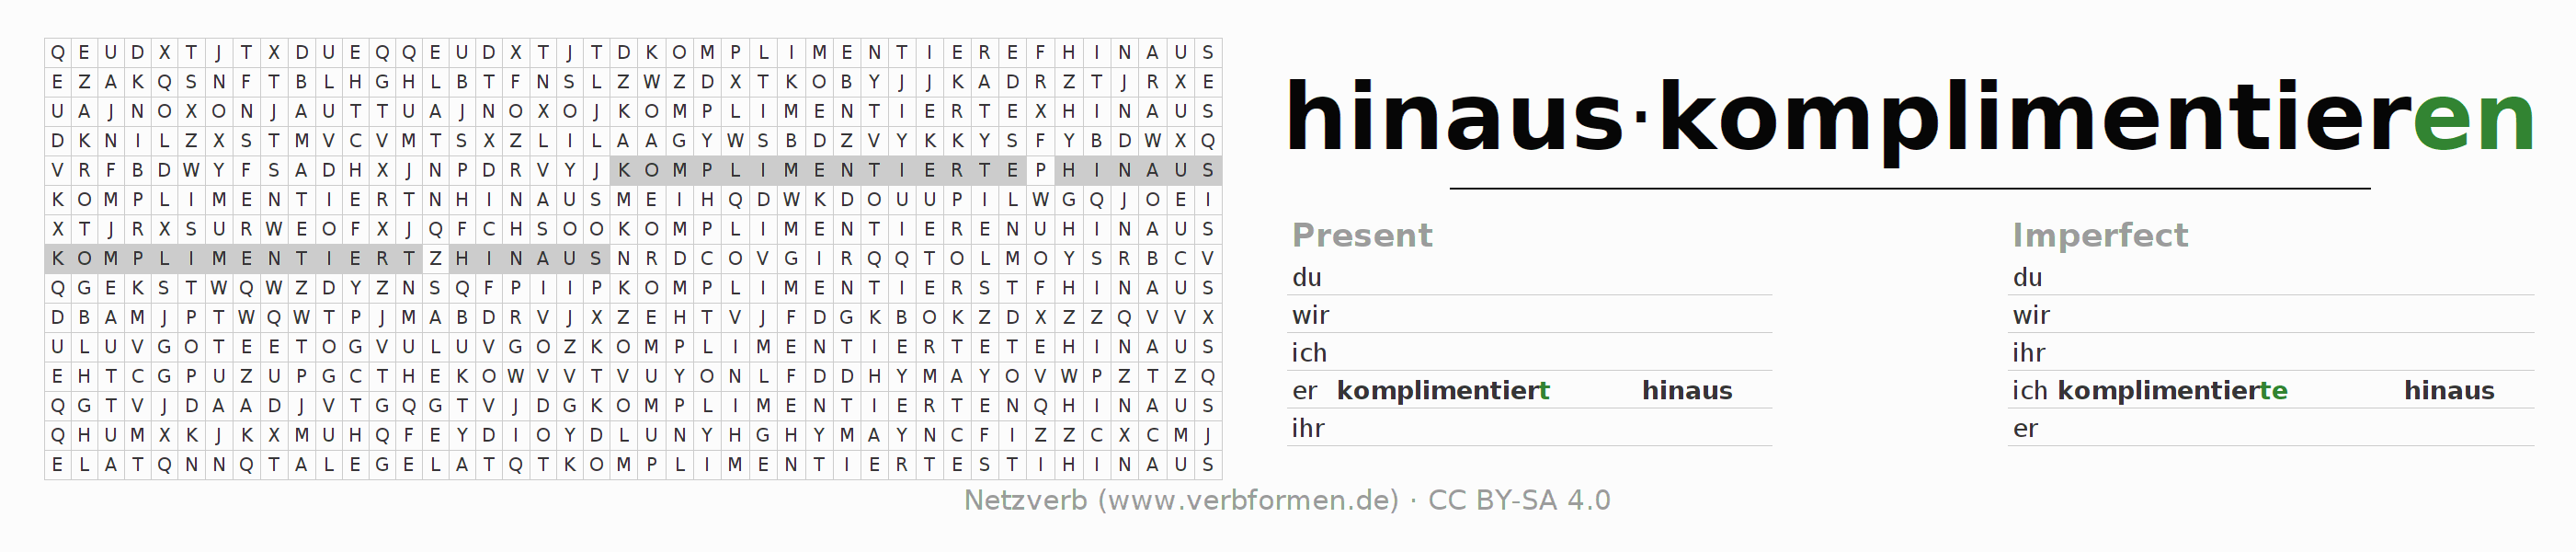 Word search puzzle for the conjugation of the verb hinauskomplimentieren